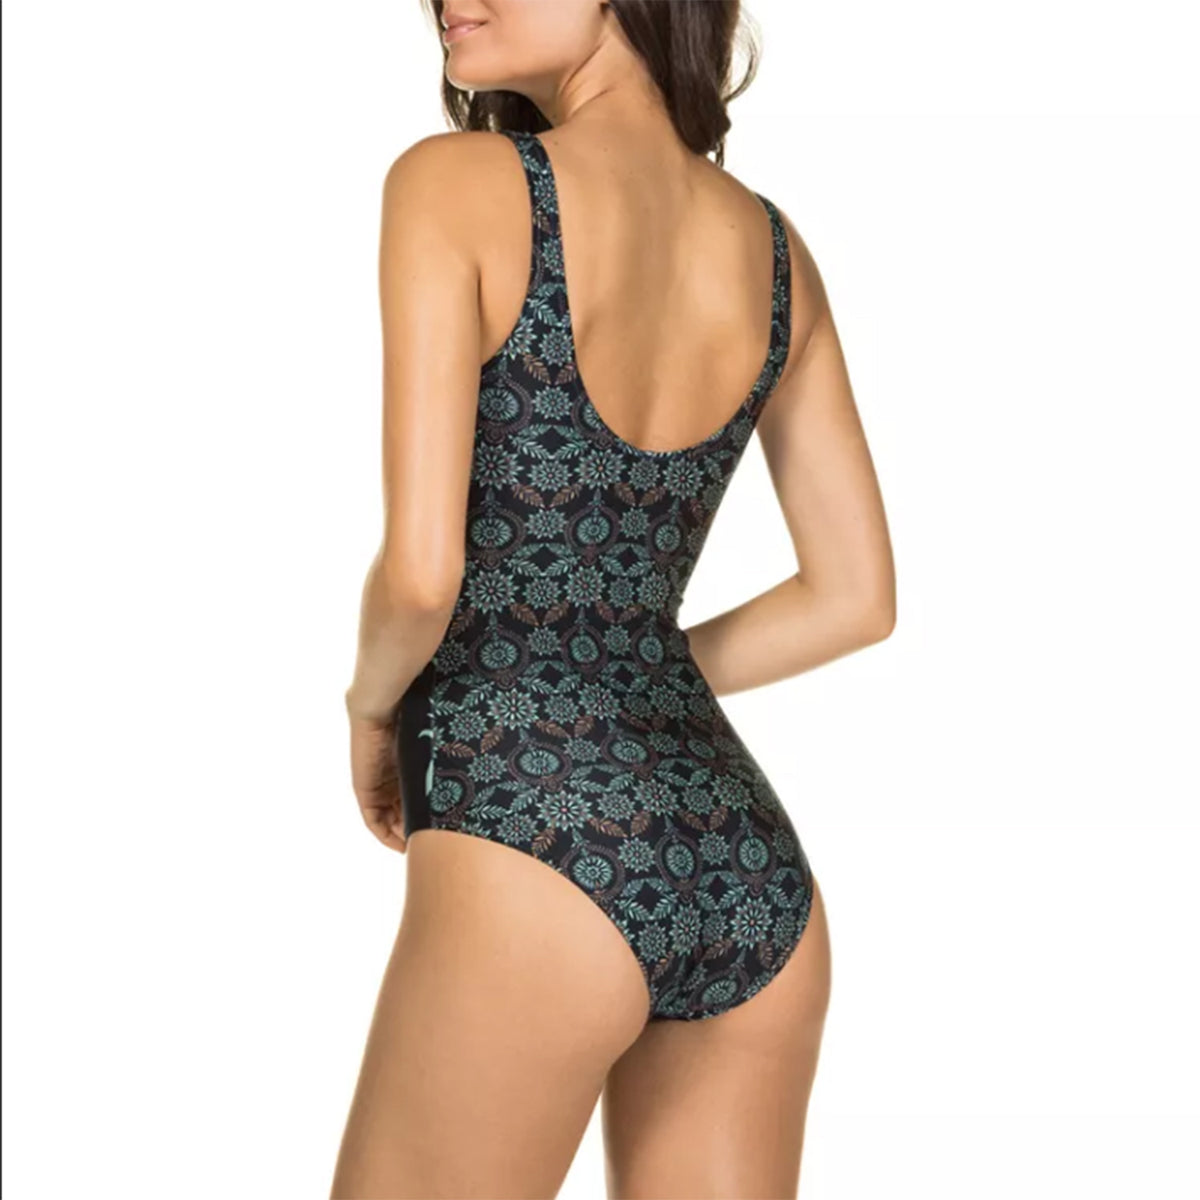 Boho Style Print One Piece Swimsuit - worthtryit.com